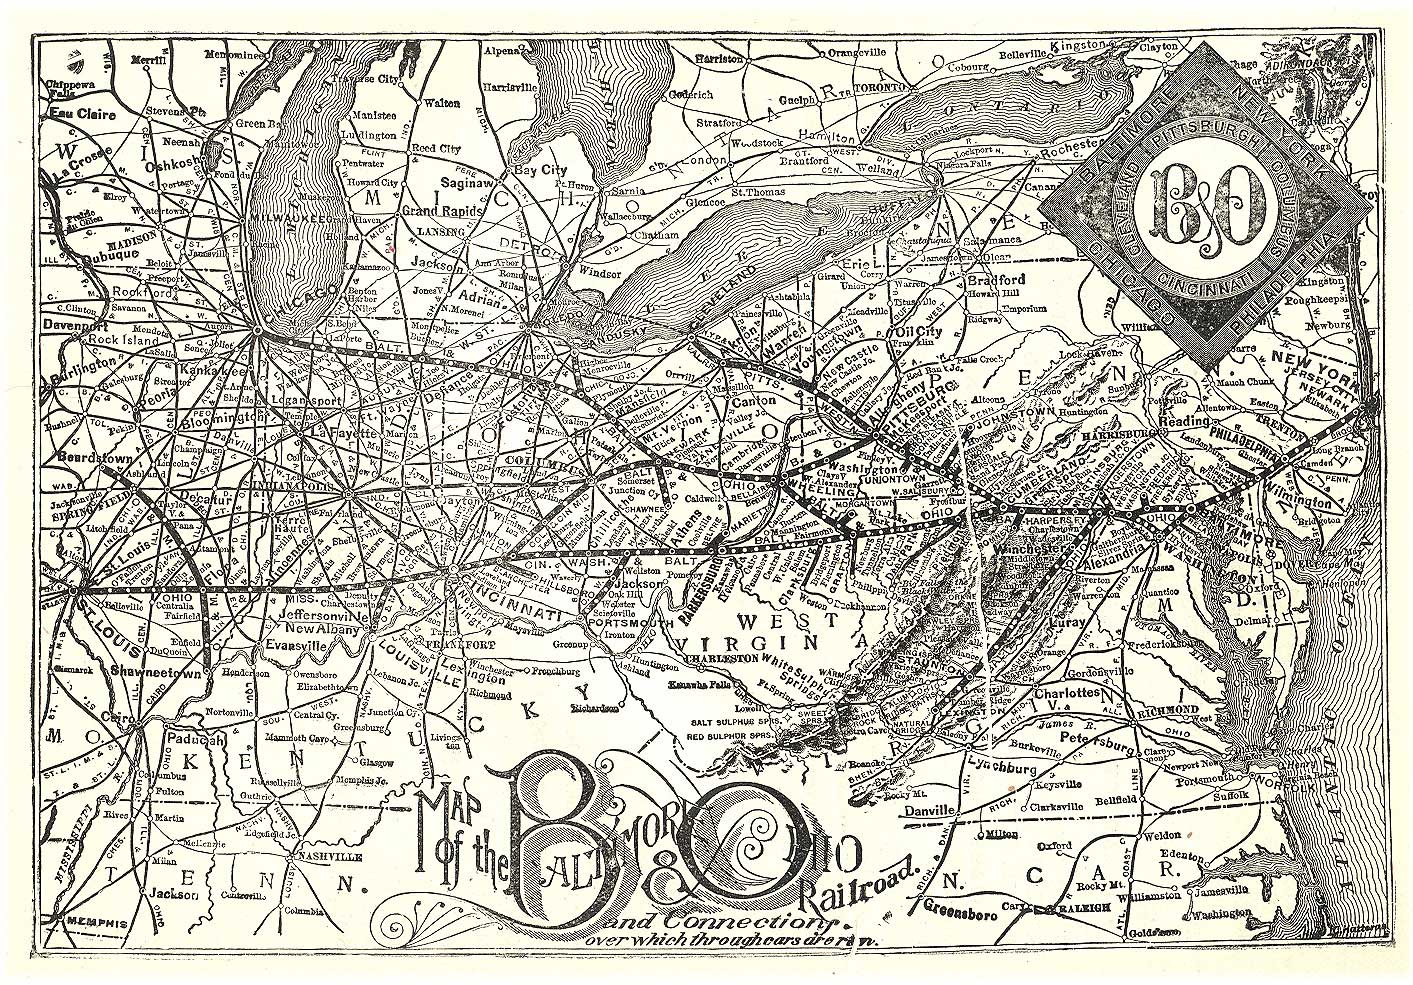 1891 B&O Railroad.jpg